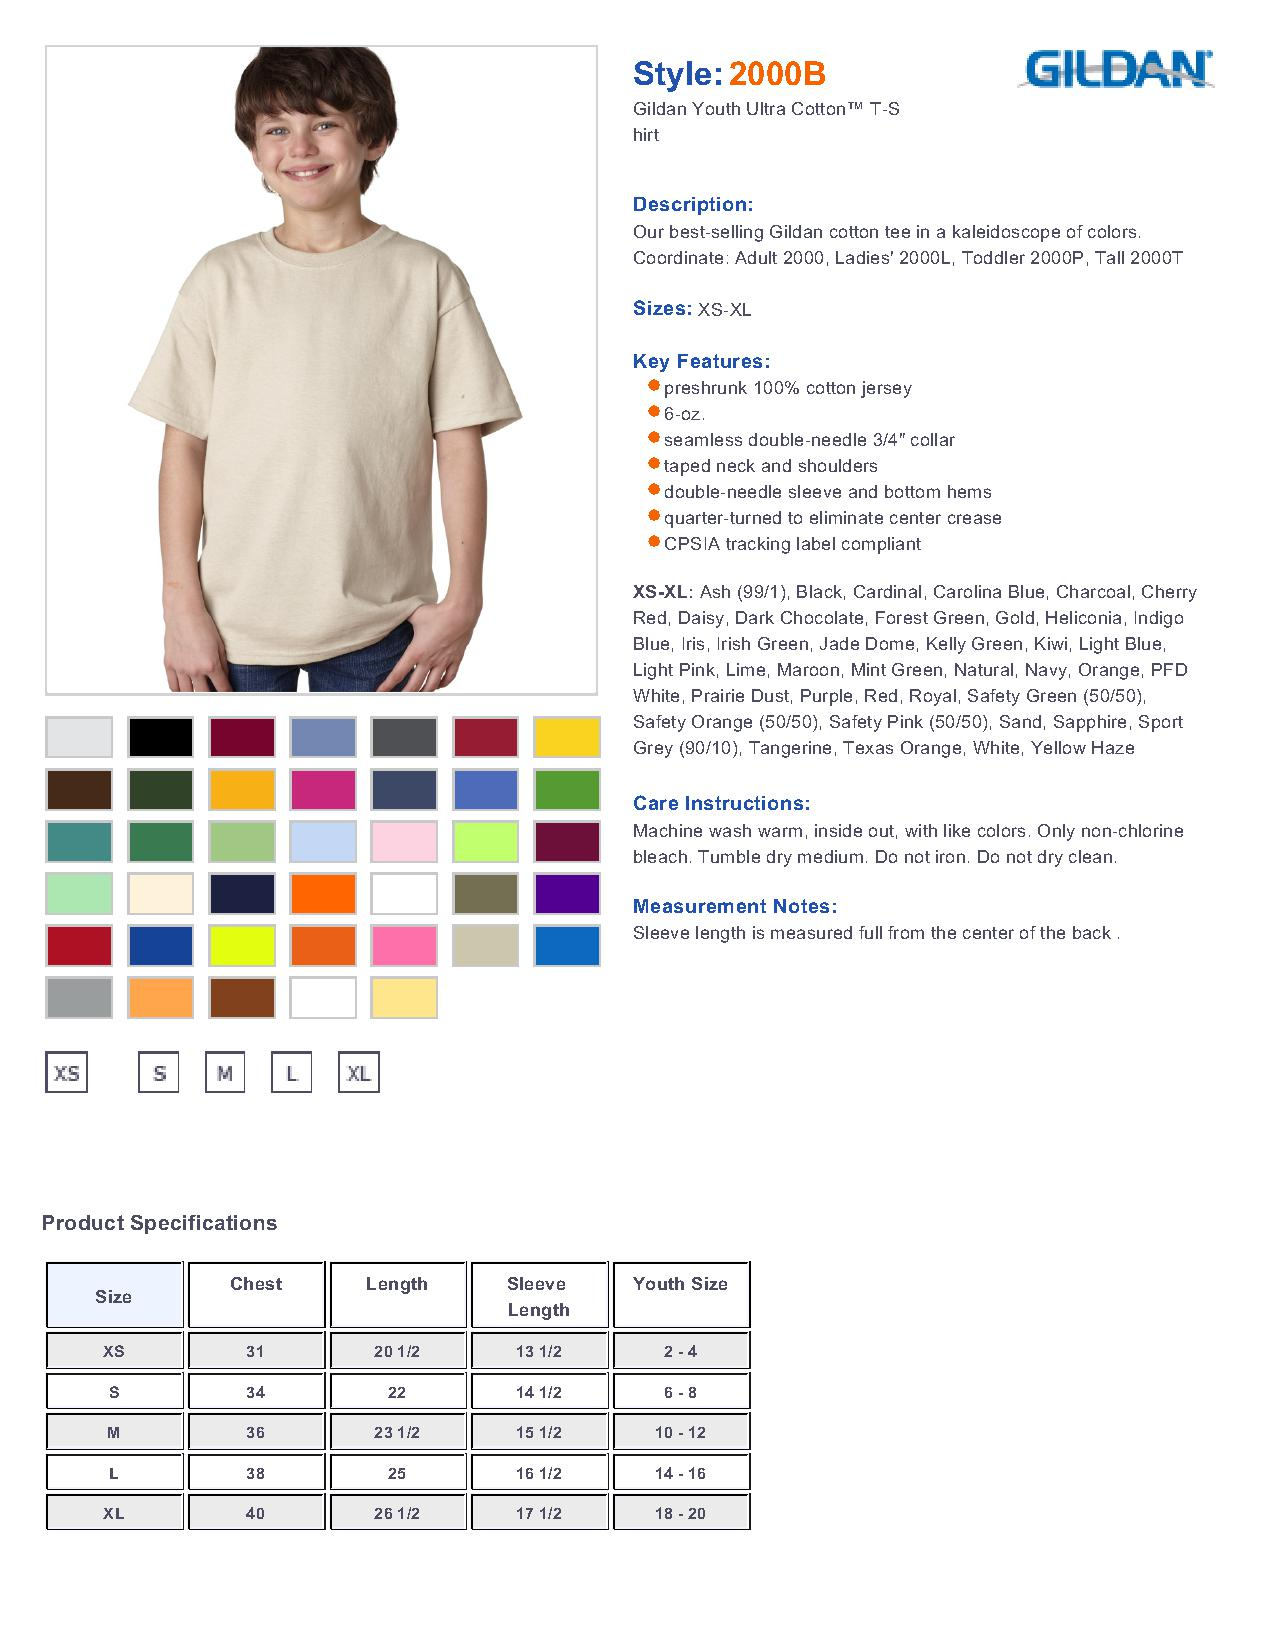 Gildan - Ultra Cotton Youth T-Shirt - 2000B $3.61 - Youth's T-Shirts